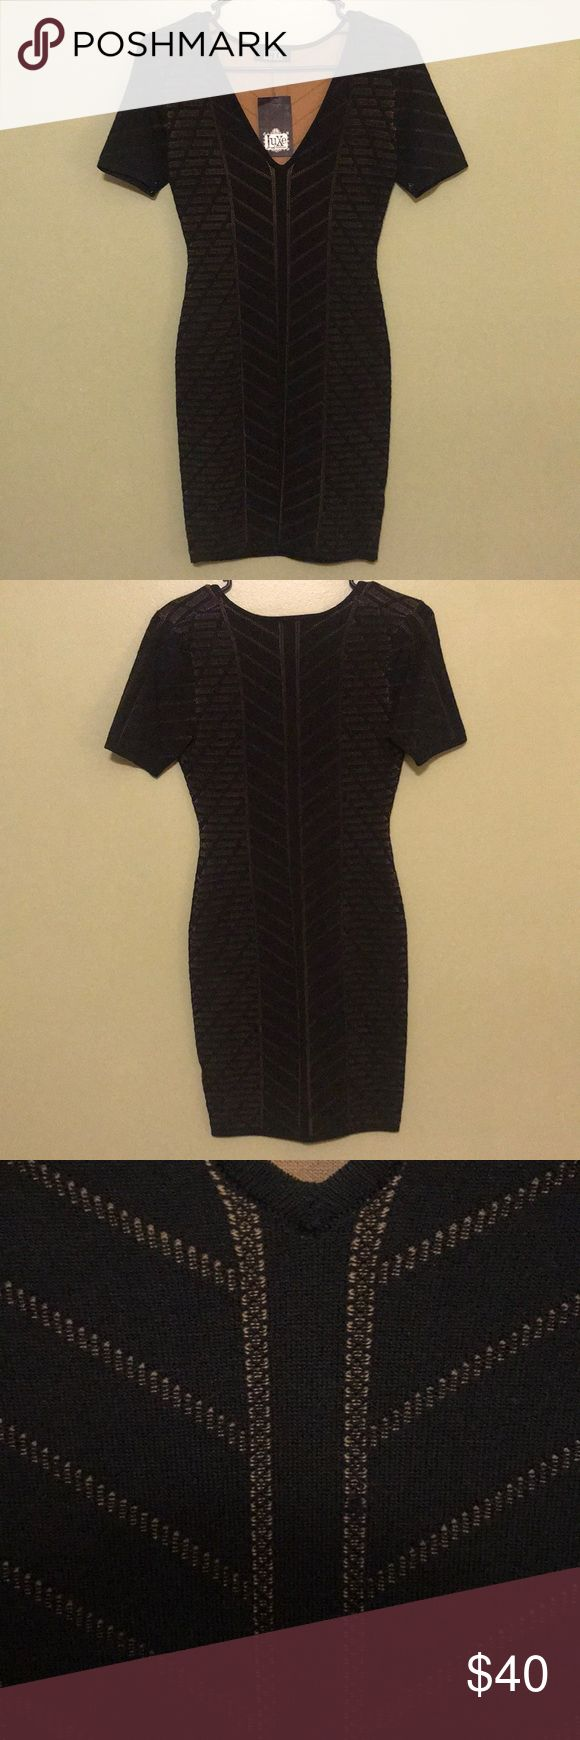 Black and Nude Bodycon Dress NWT! From local boutique here in Chattanooga, TN. Dress is black with a nude underlay that shows through the gorgeous detailing on the dress-please see pictures.  Looks absolutely stunning on and perfect for a night out on the town or date night! *From smoke free home Luxe Dresses Mini